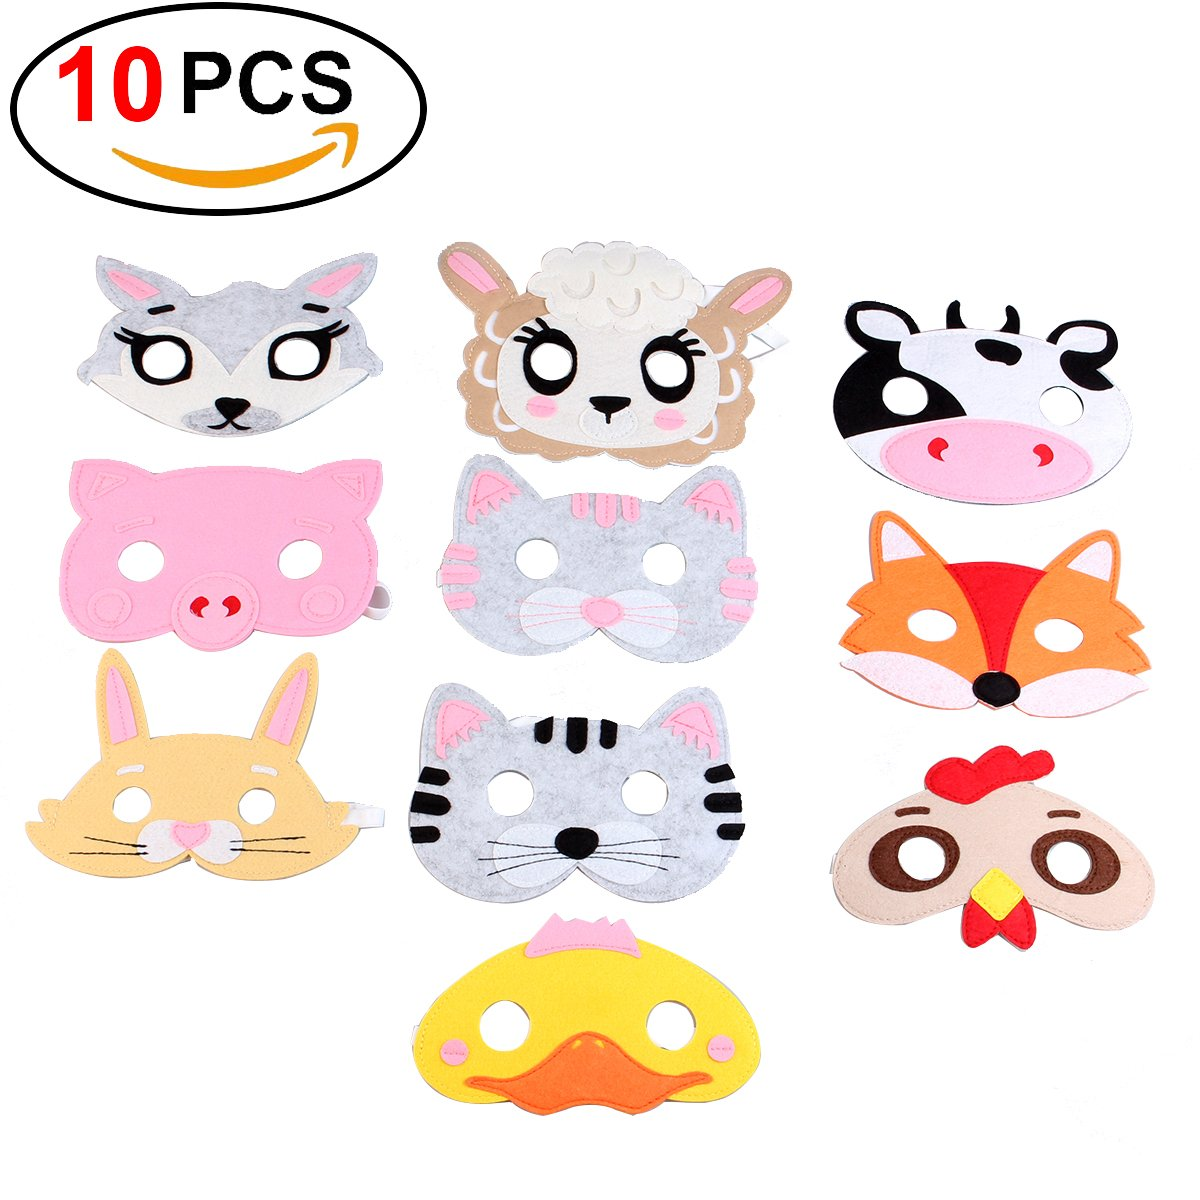 Yibaoo 10 Pieces Forest Friends Felt Animal Mask for Birthday Party Favors Dress-Up Cosplay,Party Supplies